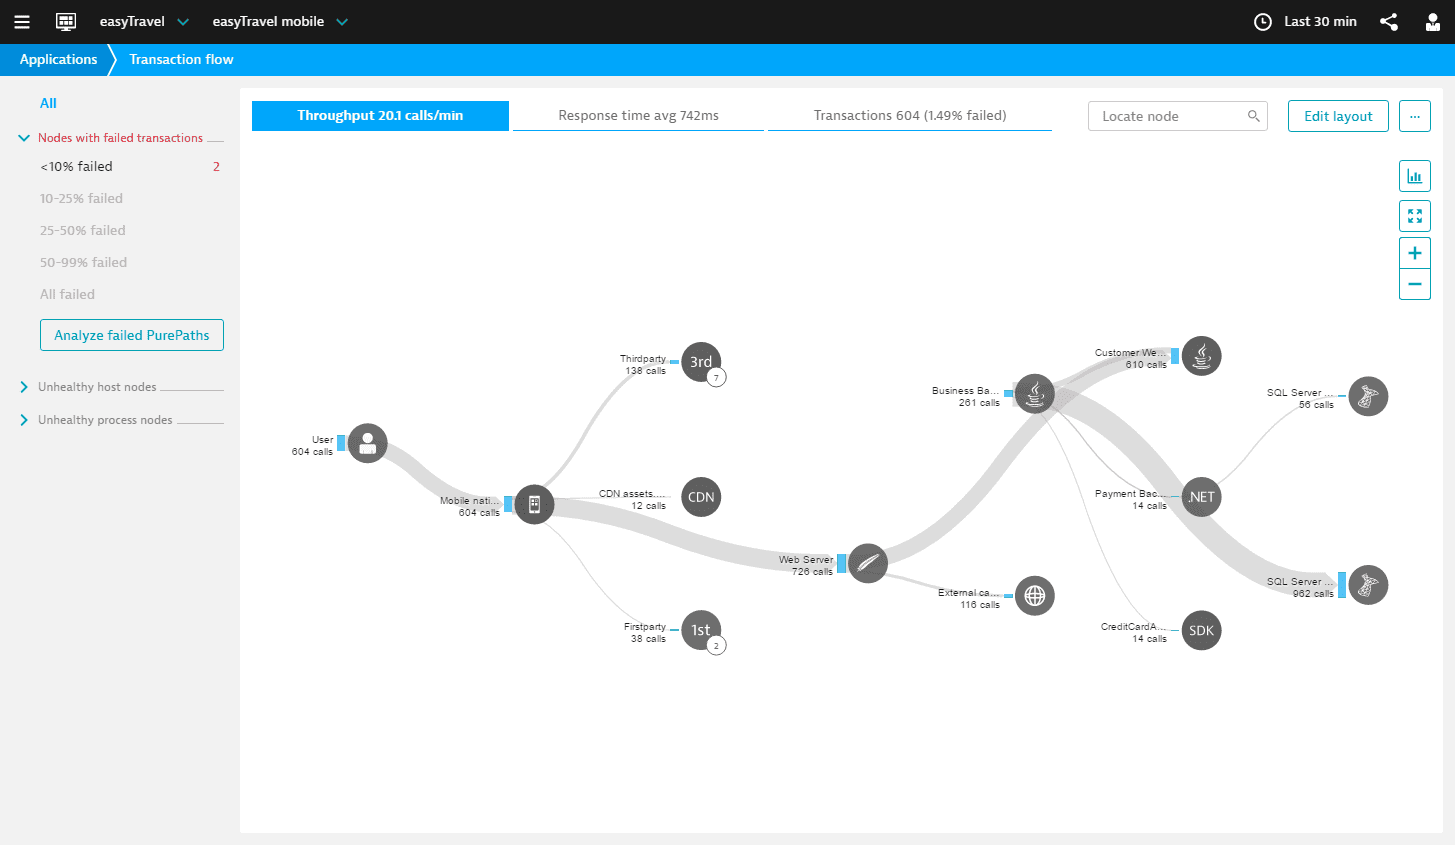 Transaction flow - topology view